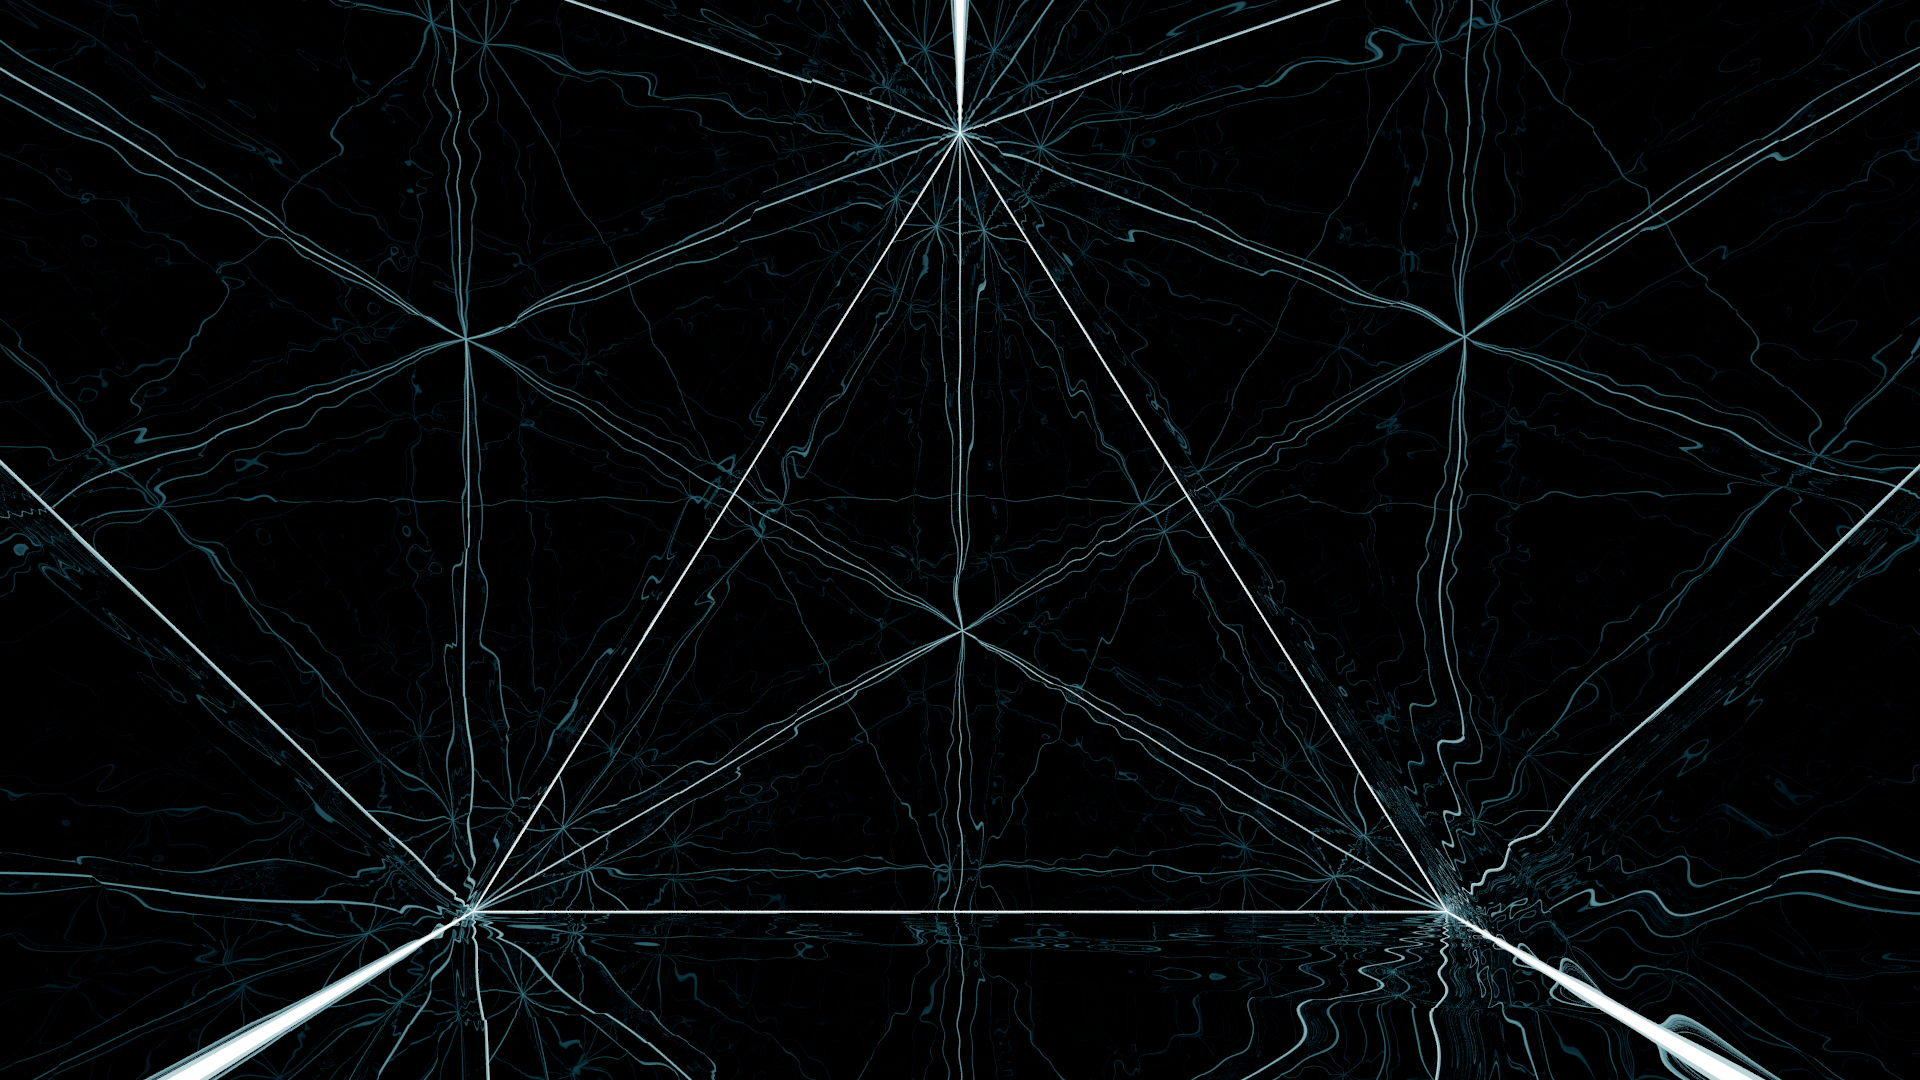 geometry, Black, Blue, Abstract, CGI, Mirror, Reflection